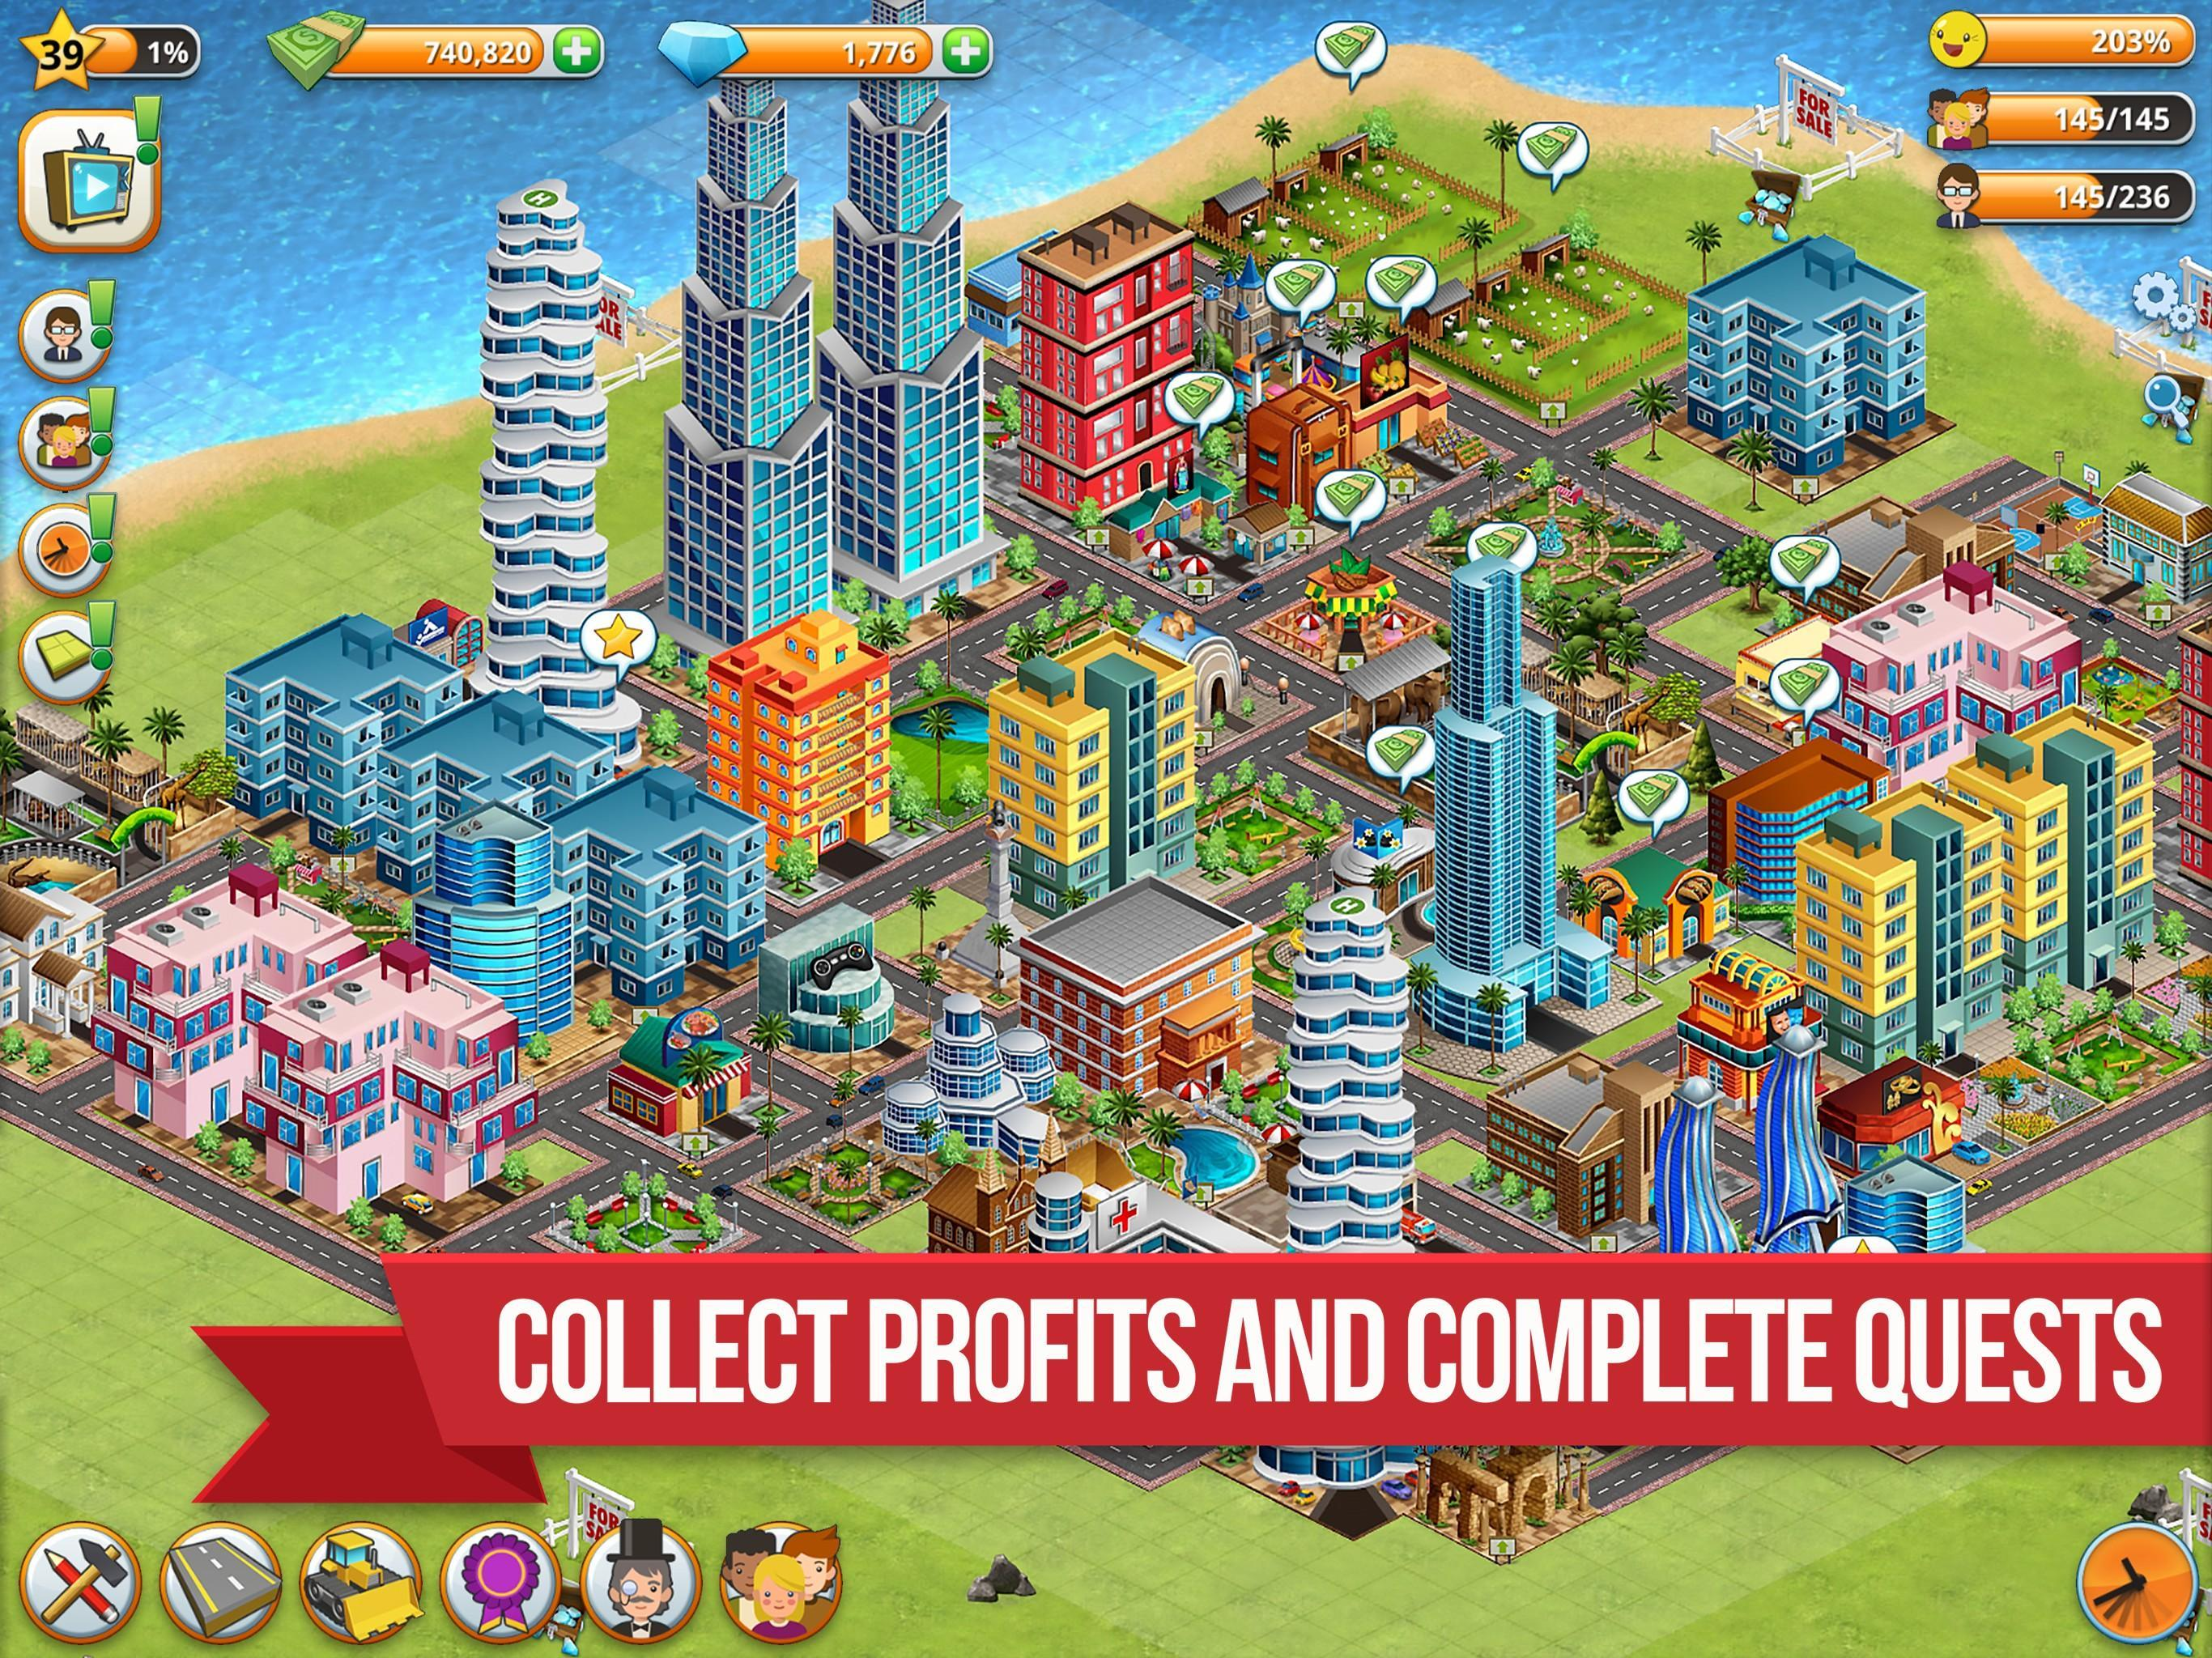 Lihat game gratis Village City - Island Simulation v1.9.3